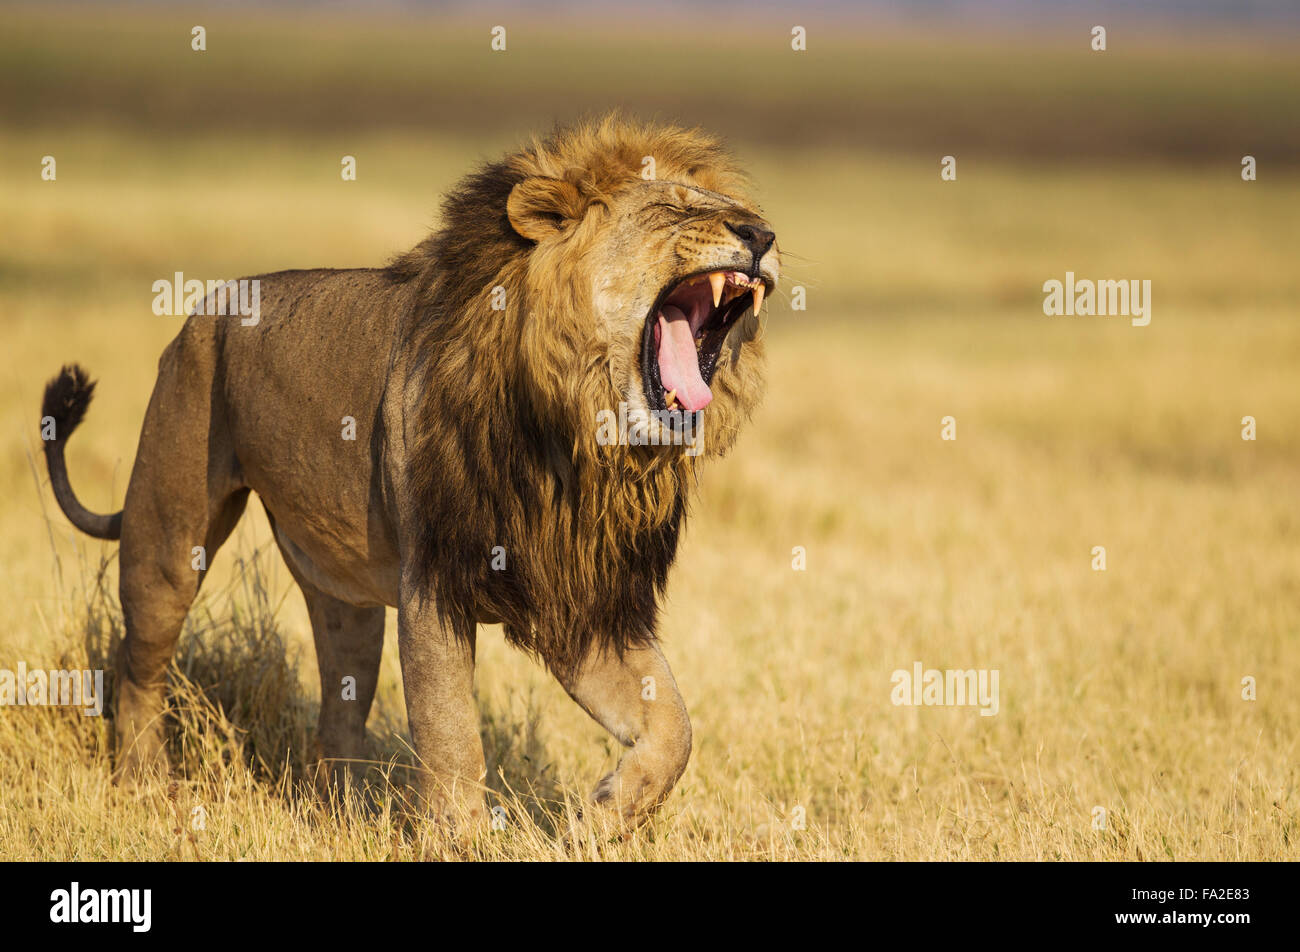 Lion (Panthera leo), male, walking and yawning, Savuti, Chobe National Park, Botswana - Stock Image